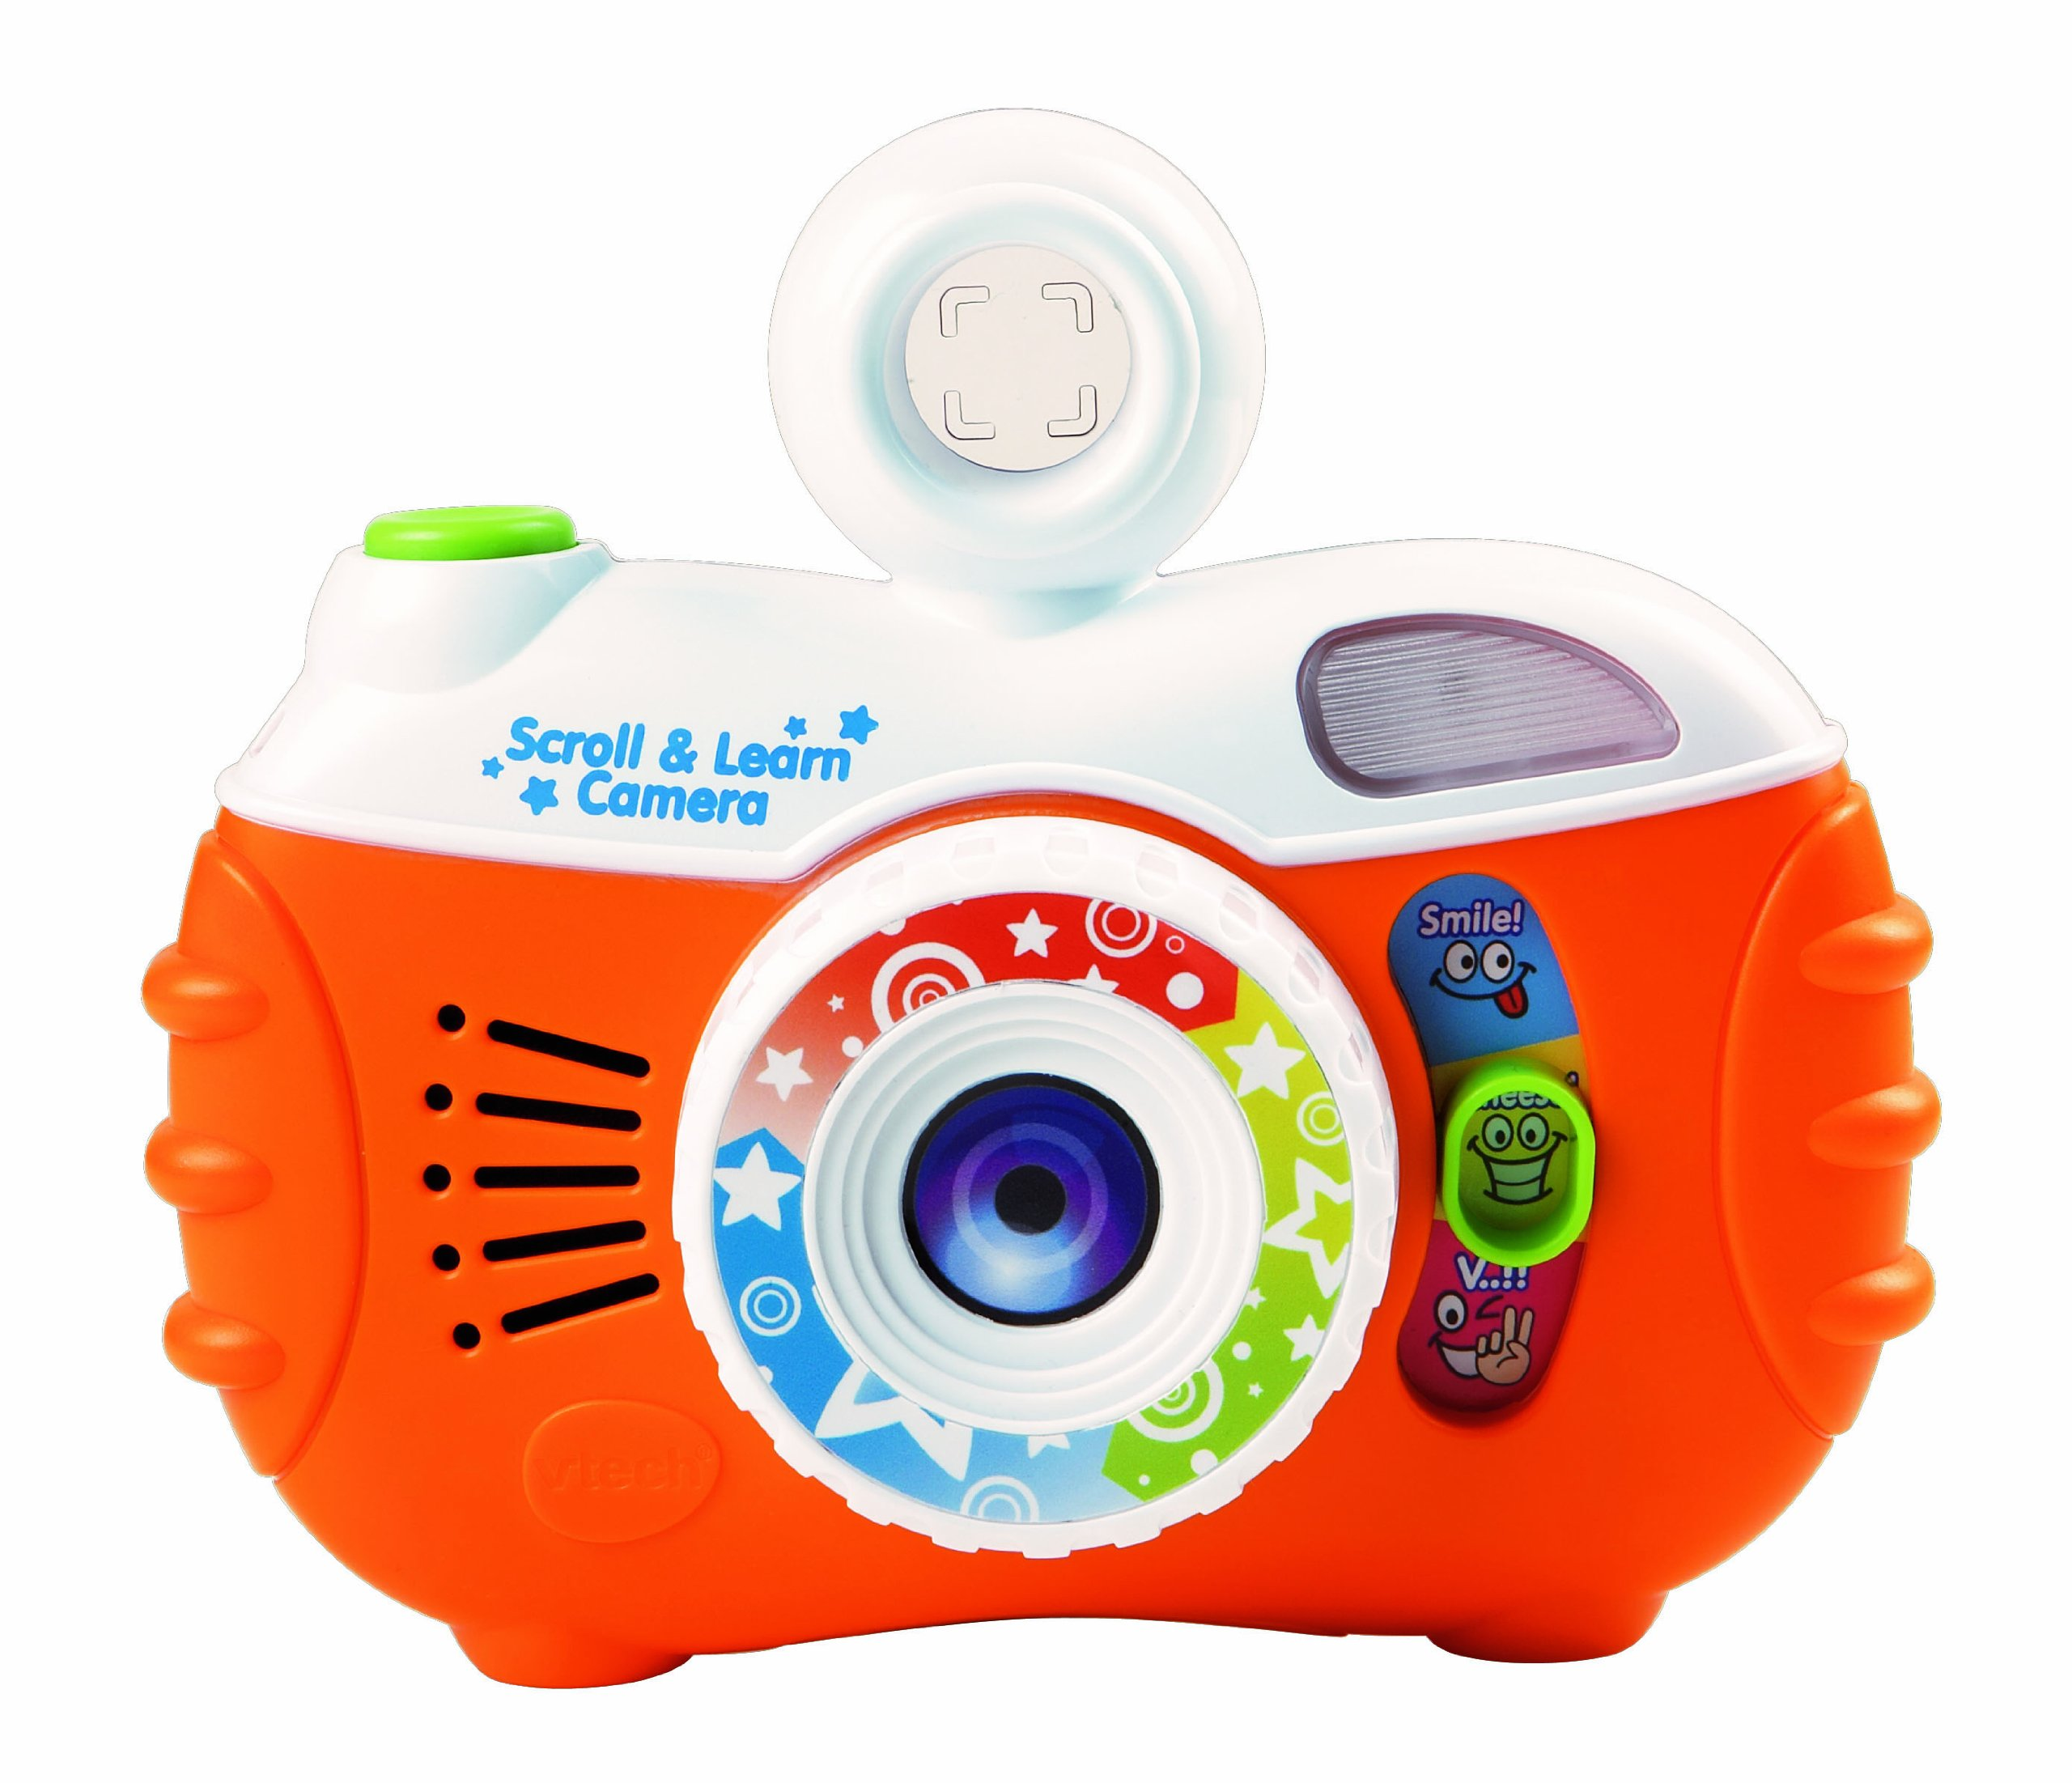 VTech Scroll and Learn Camera - Multi-Colored by VTech